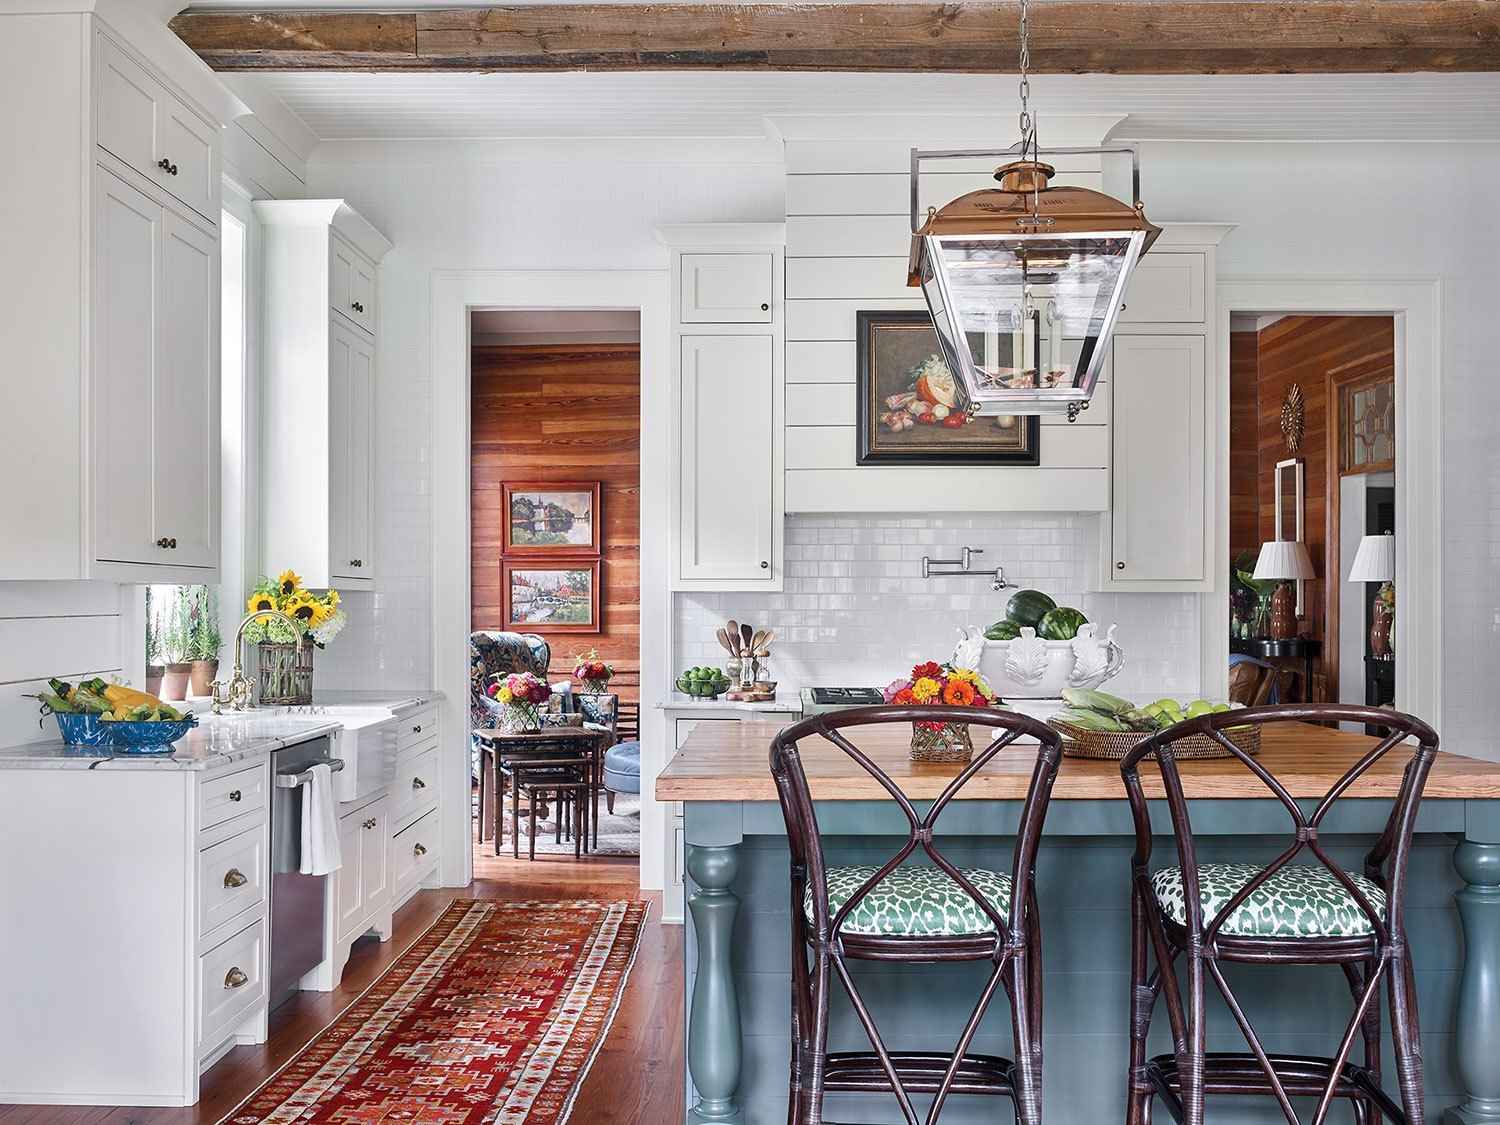 How about this kitchen as Farmhouse inspiration . There's a little shiplap, a simple vase of sunflowers, and a framed vintage still life to suggest farmhouse style without being trite or kitschy.